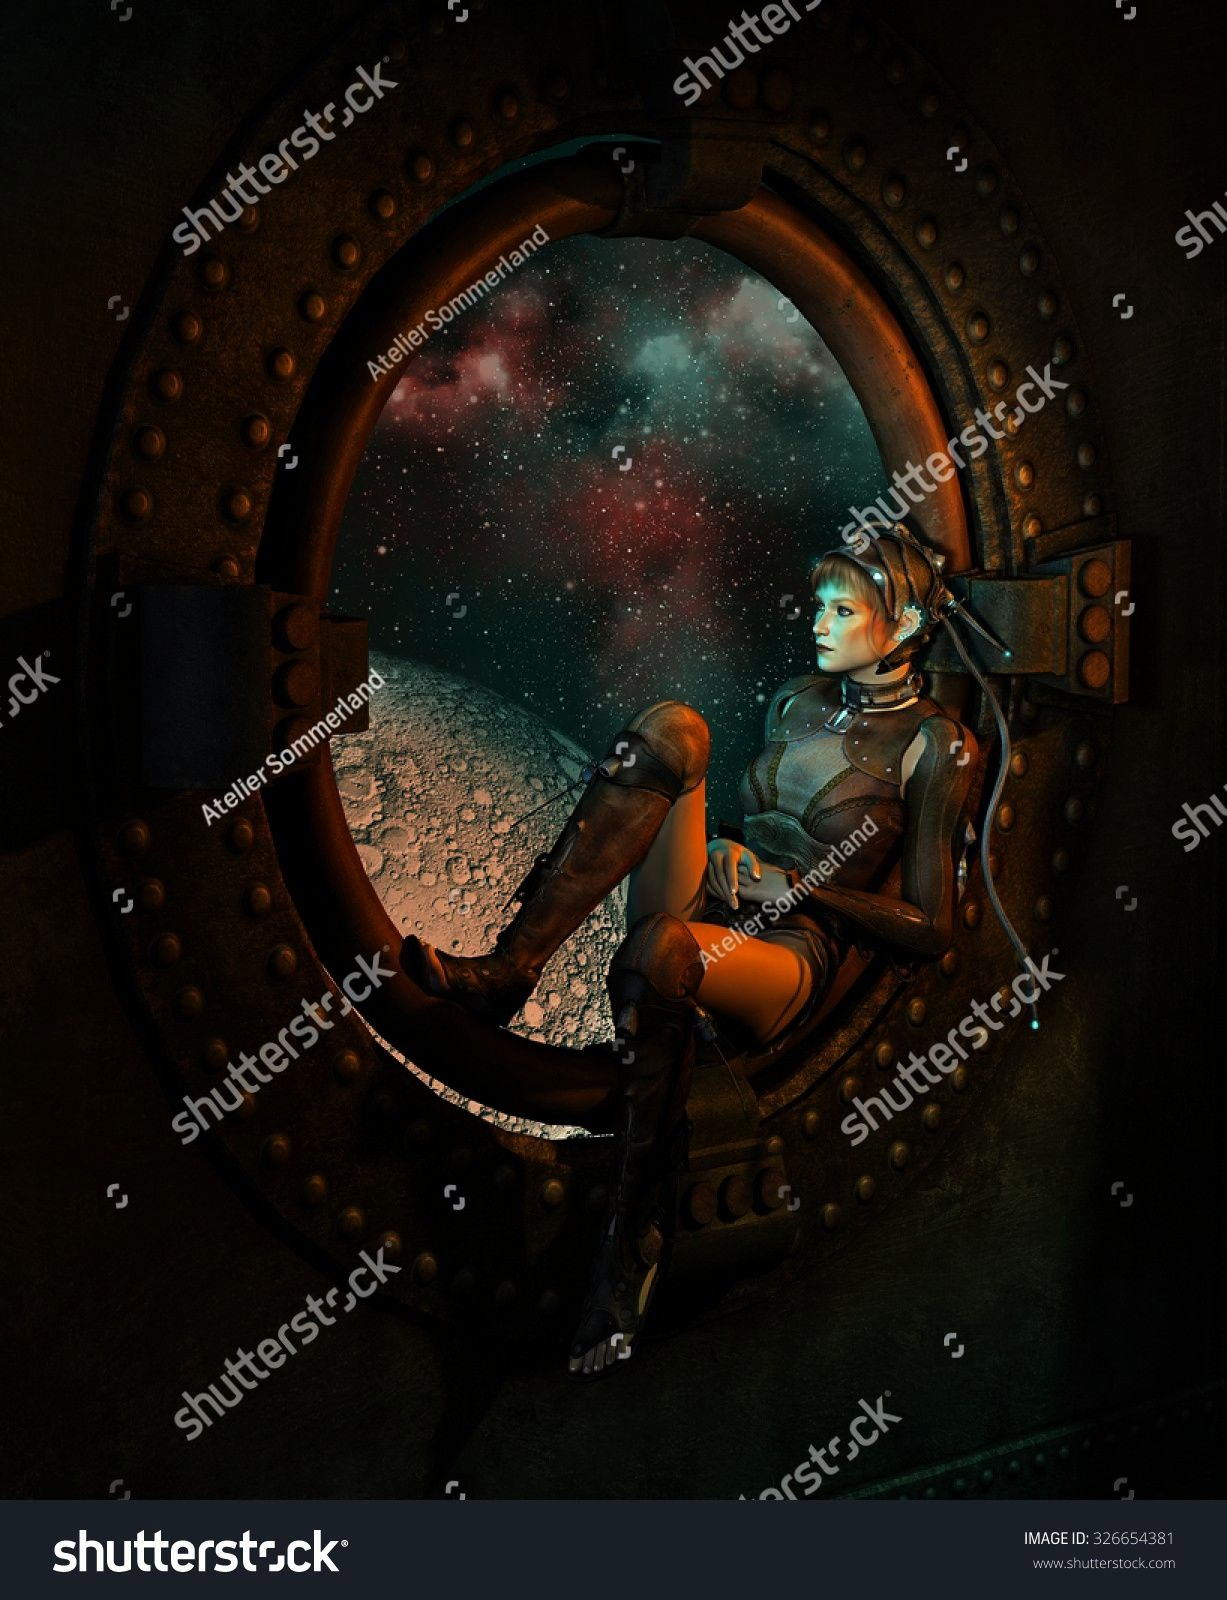 computer graphics of a young woman with a fantasy science fiction dress sitting at round window in the background the outer space 3d computer graphics of a young woman wi...